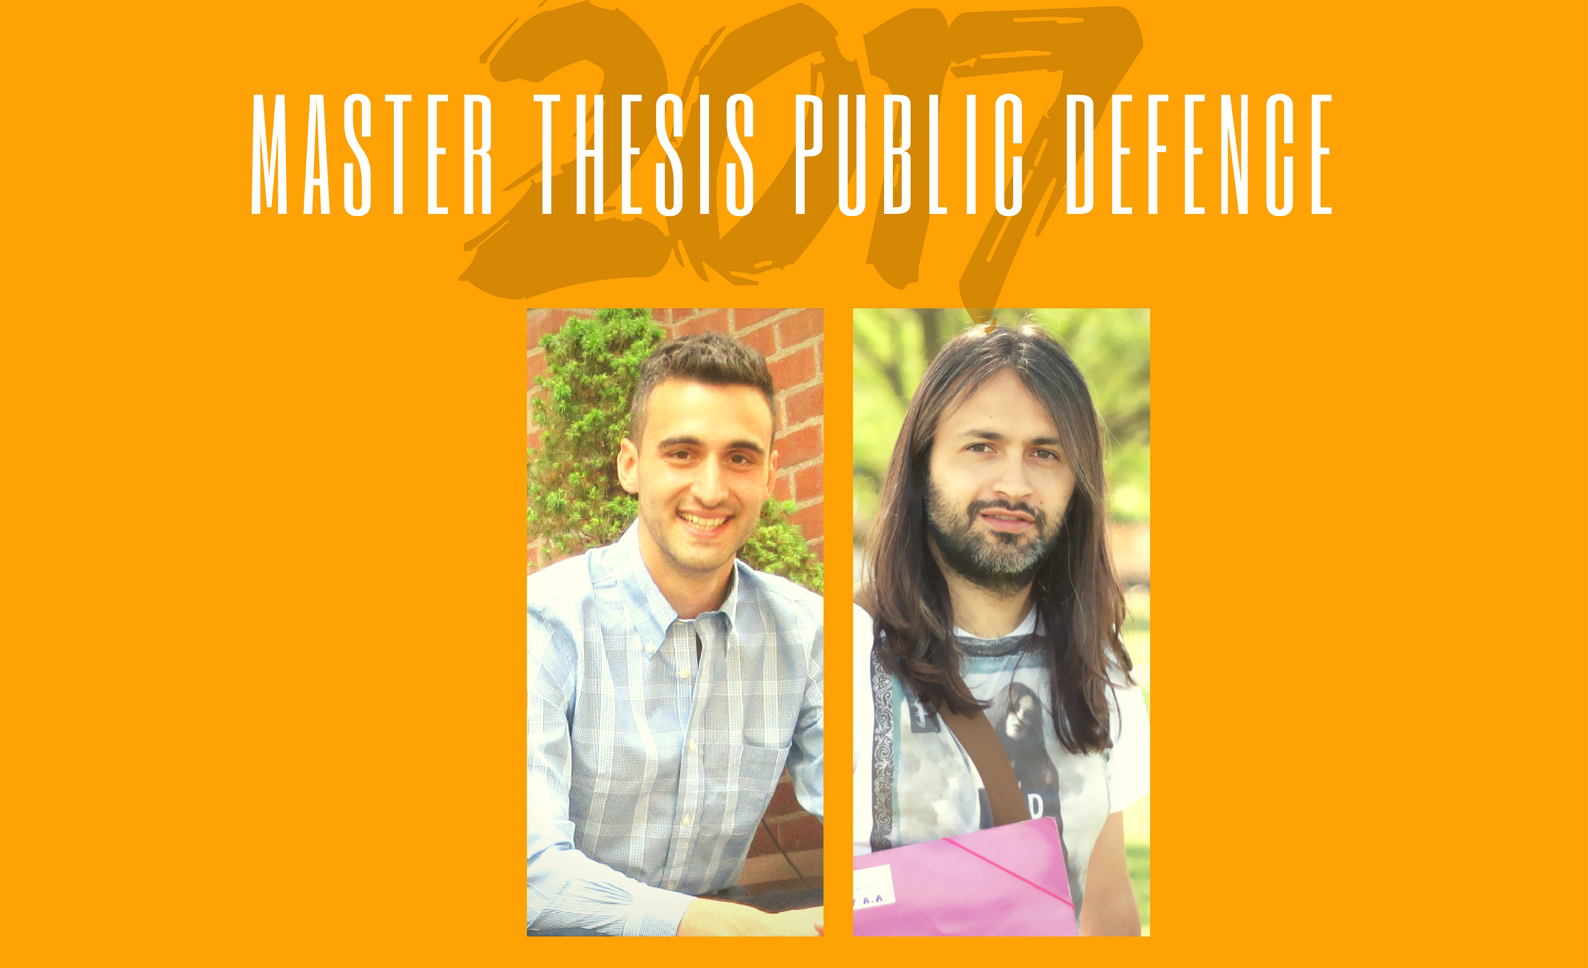 MSc Thesis Public Defence: Wednesday 28/6, Zoran & Giorgos